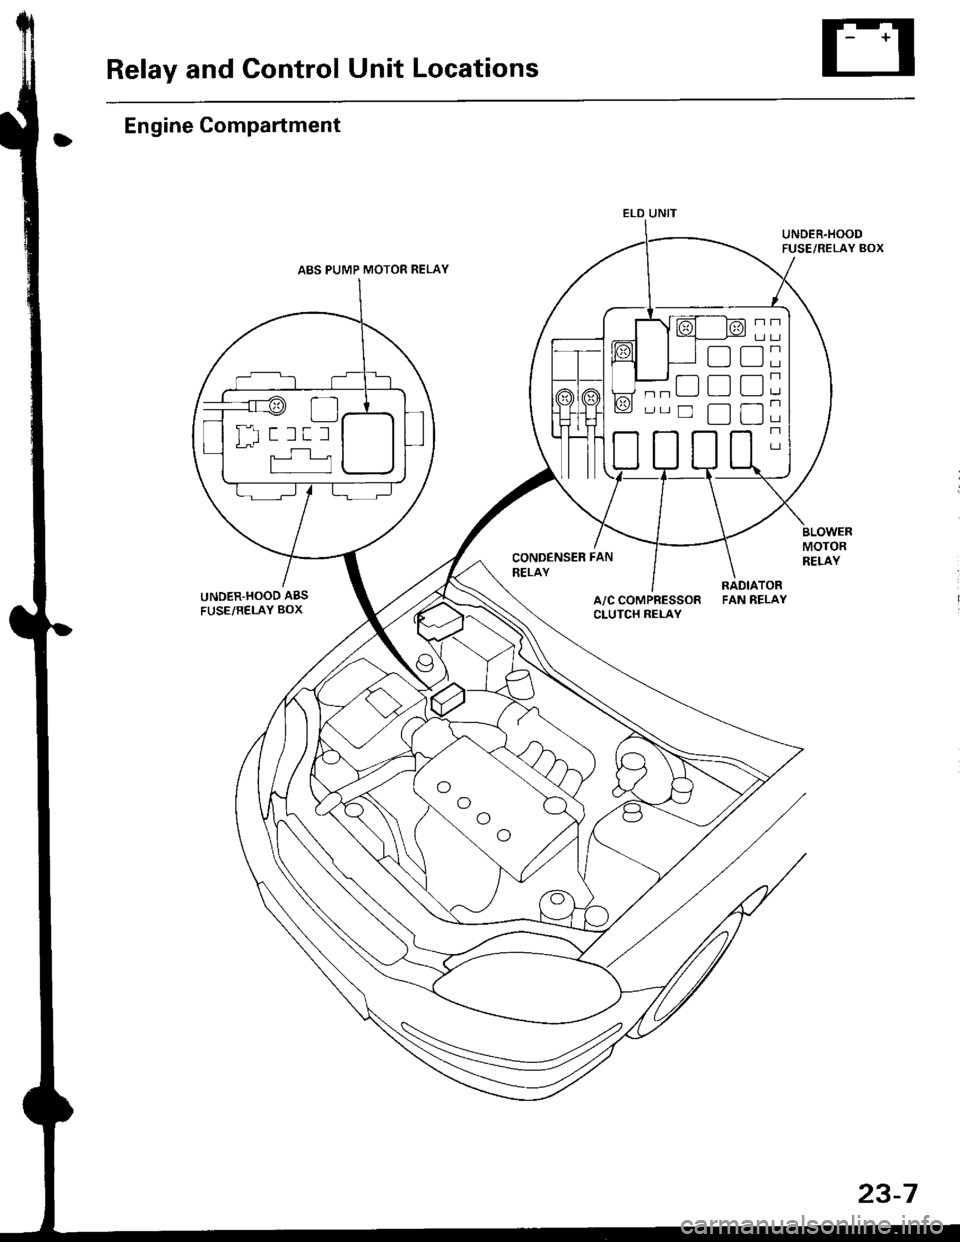 97 Civic Under Hood Fuse Box : 28 Wiring Diagram Images